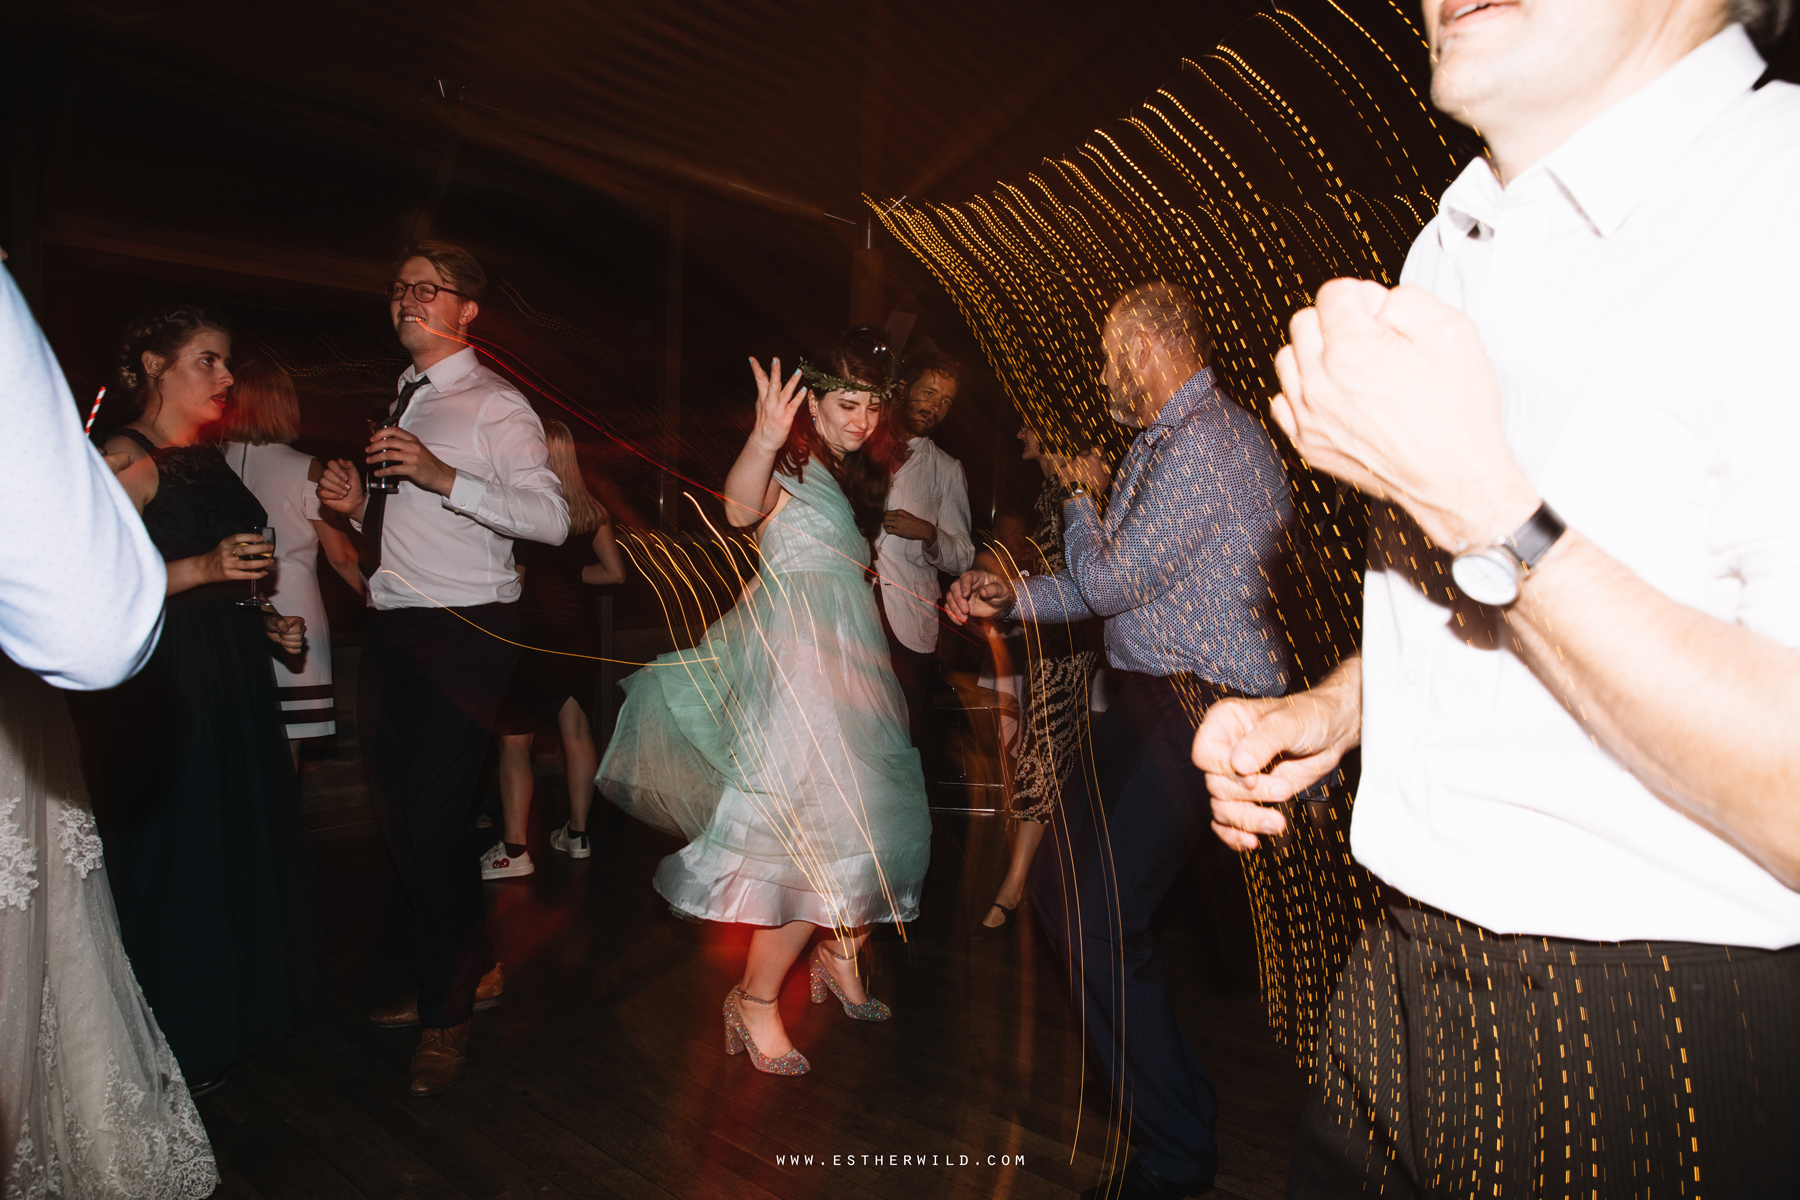 Norwich_Castle_Arcade_Grosvenor_Chip_Birdcage_Cathedral_Cloisters_Refectory_Wedding_Photography_Esther_Wild_Photographer_Norfolk_Kings_Lynn_3R8A3339.jpg